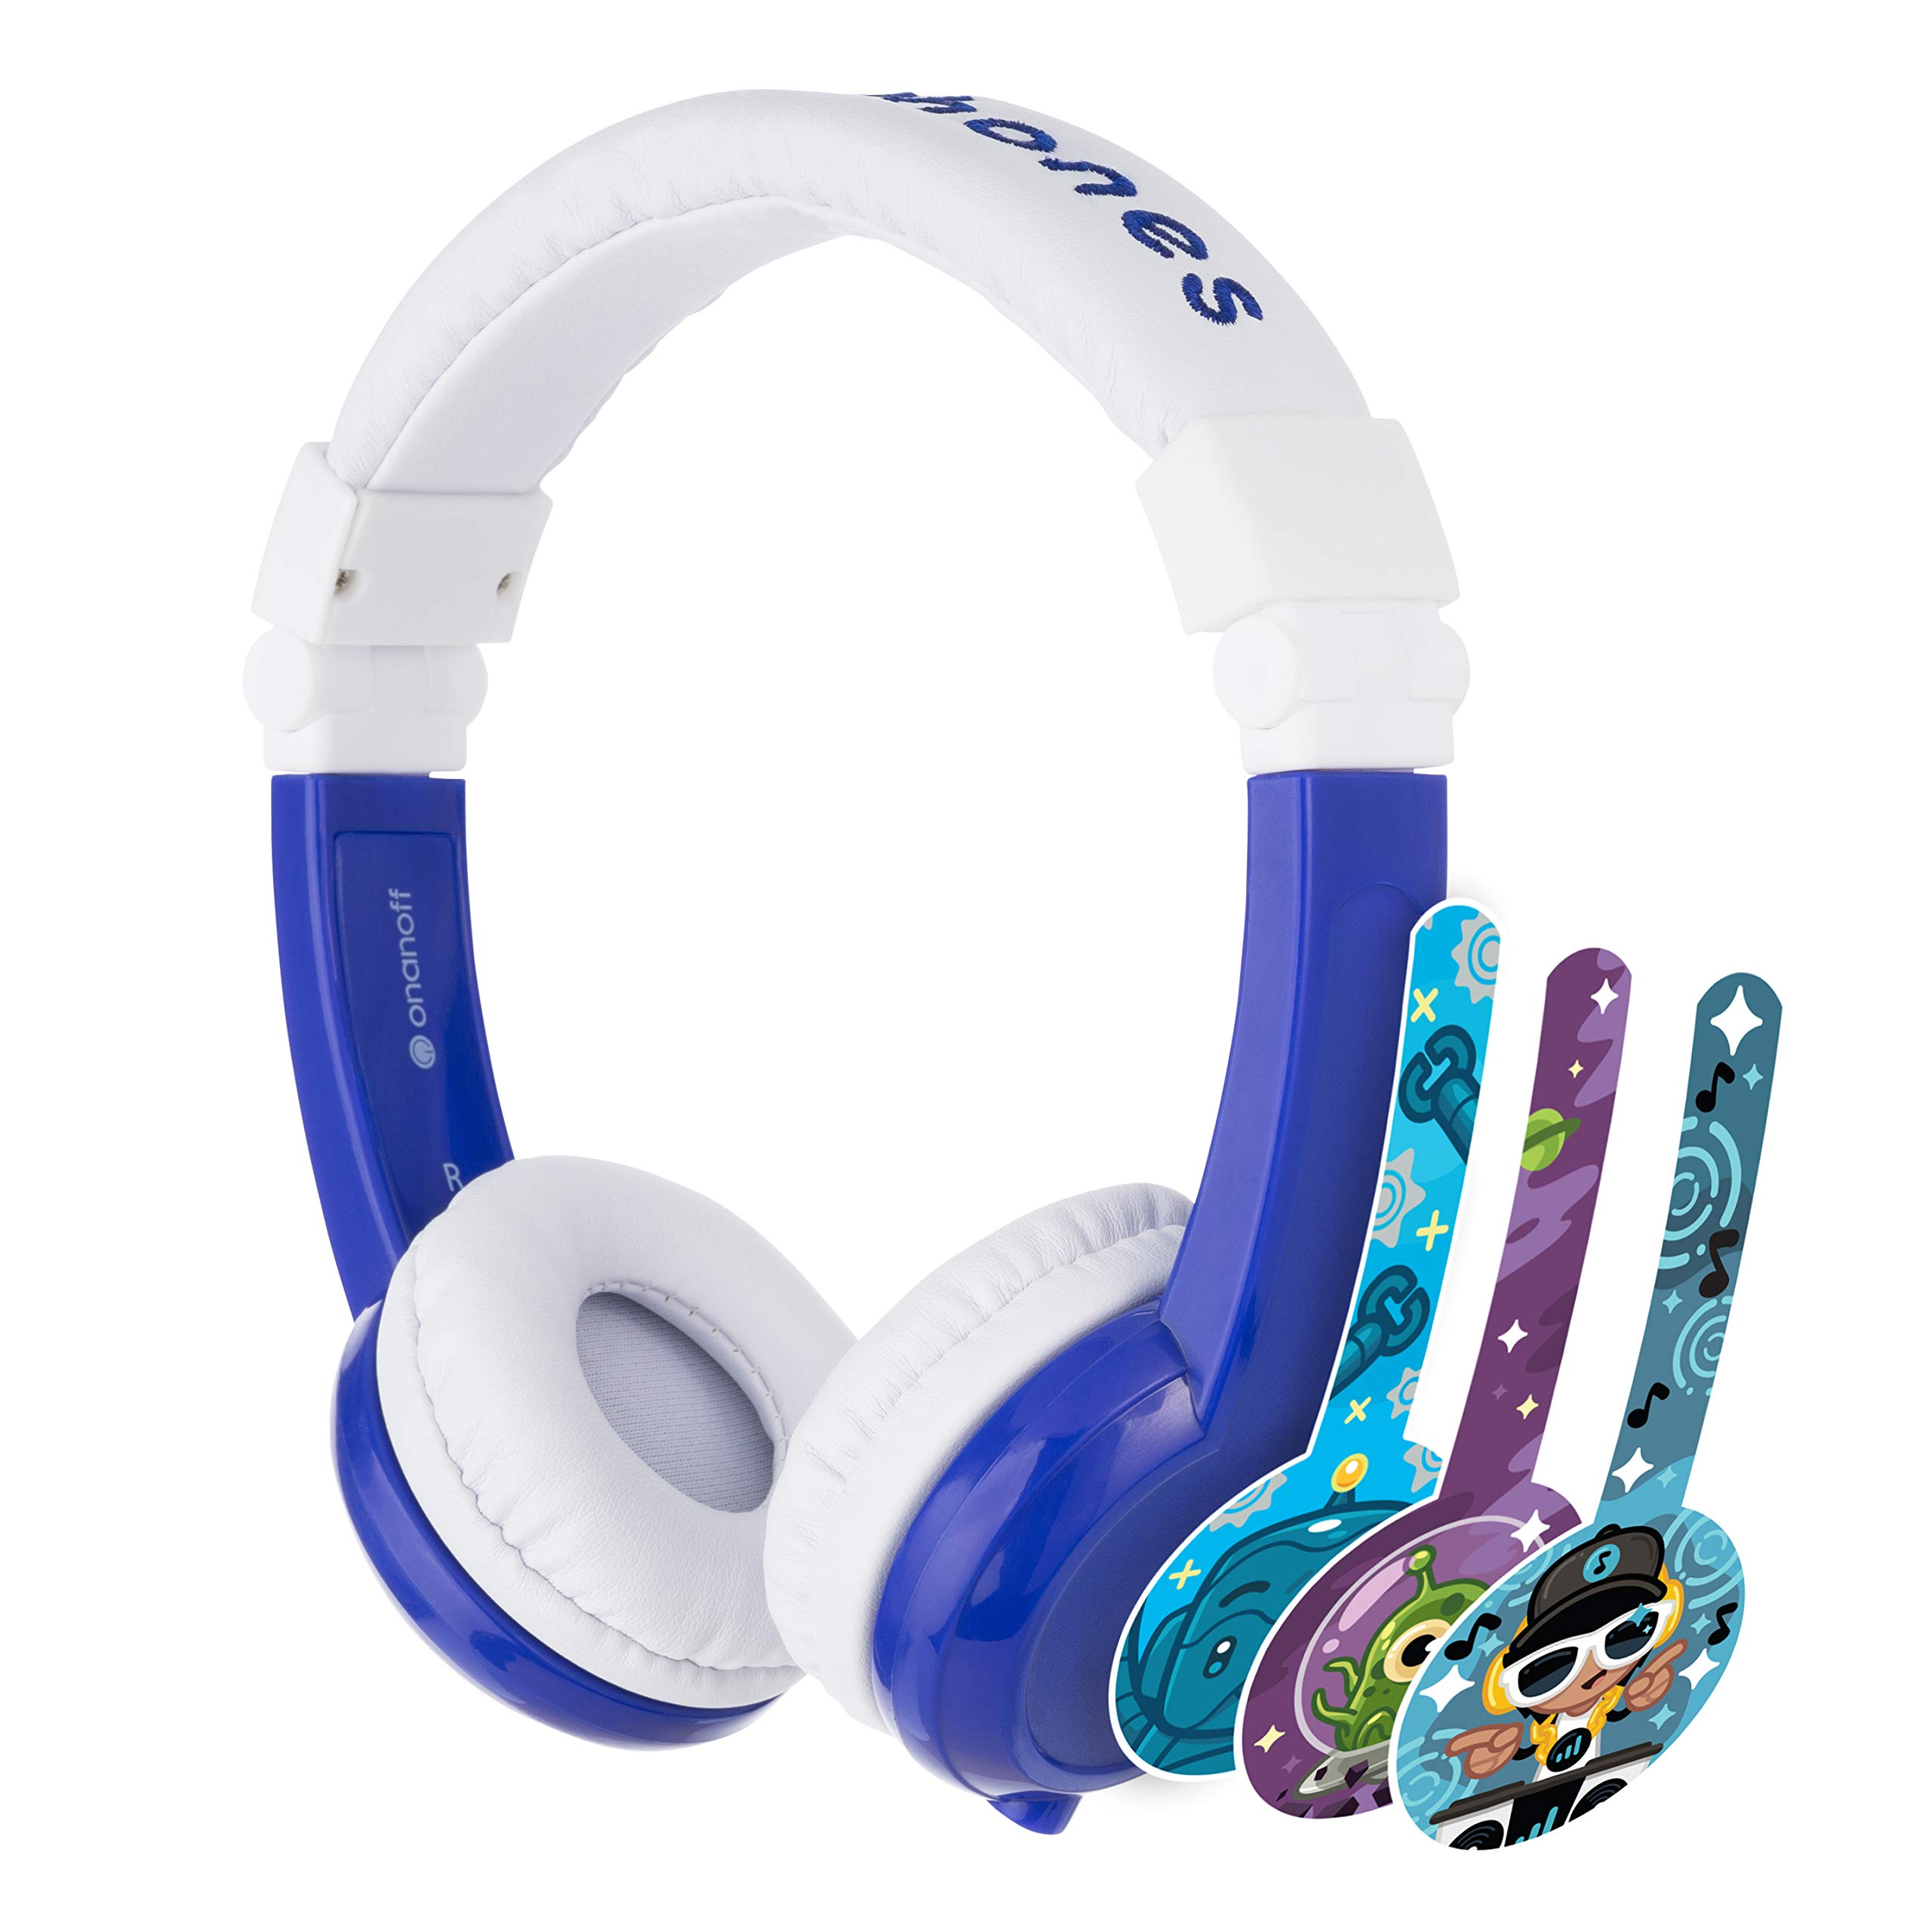 BuddyPhones Explore Foldable - Kids Volume Limiting Headphones - Built-In Audio Sharing Cable and In-Line Mic - Compatible with Fire, iPad, iPhone, and Android Devices - Blue by ONANOFF